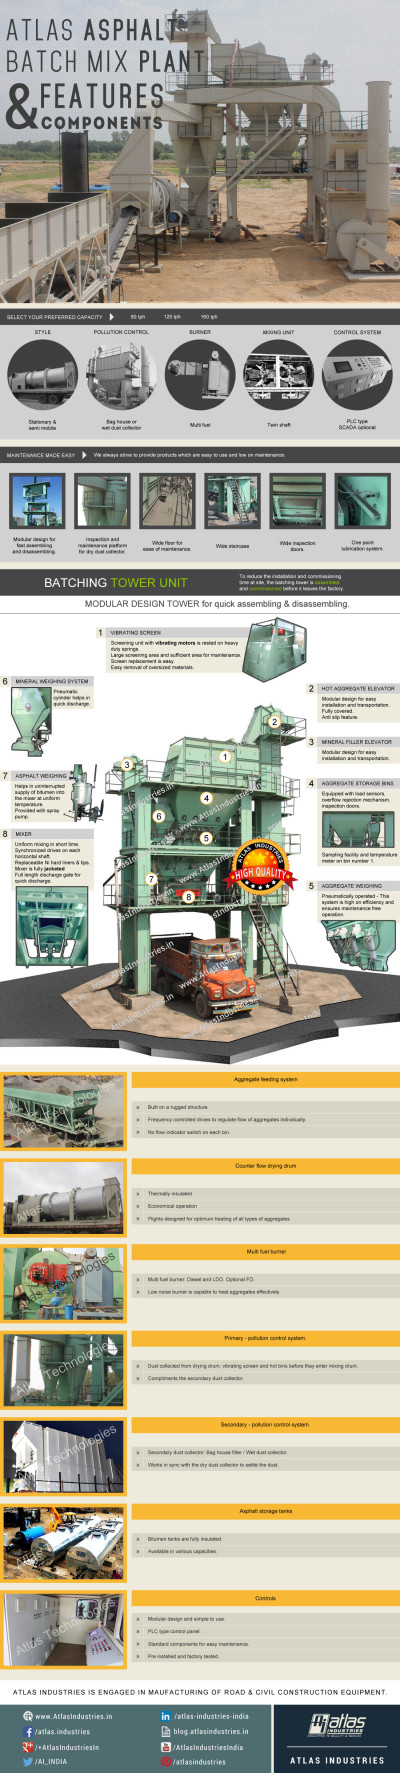 Features and components – Atlas asphalt batch plant